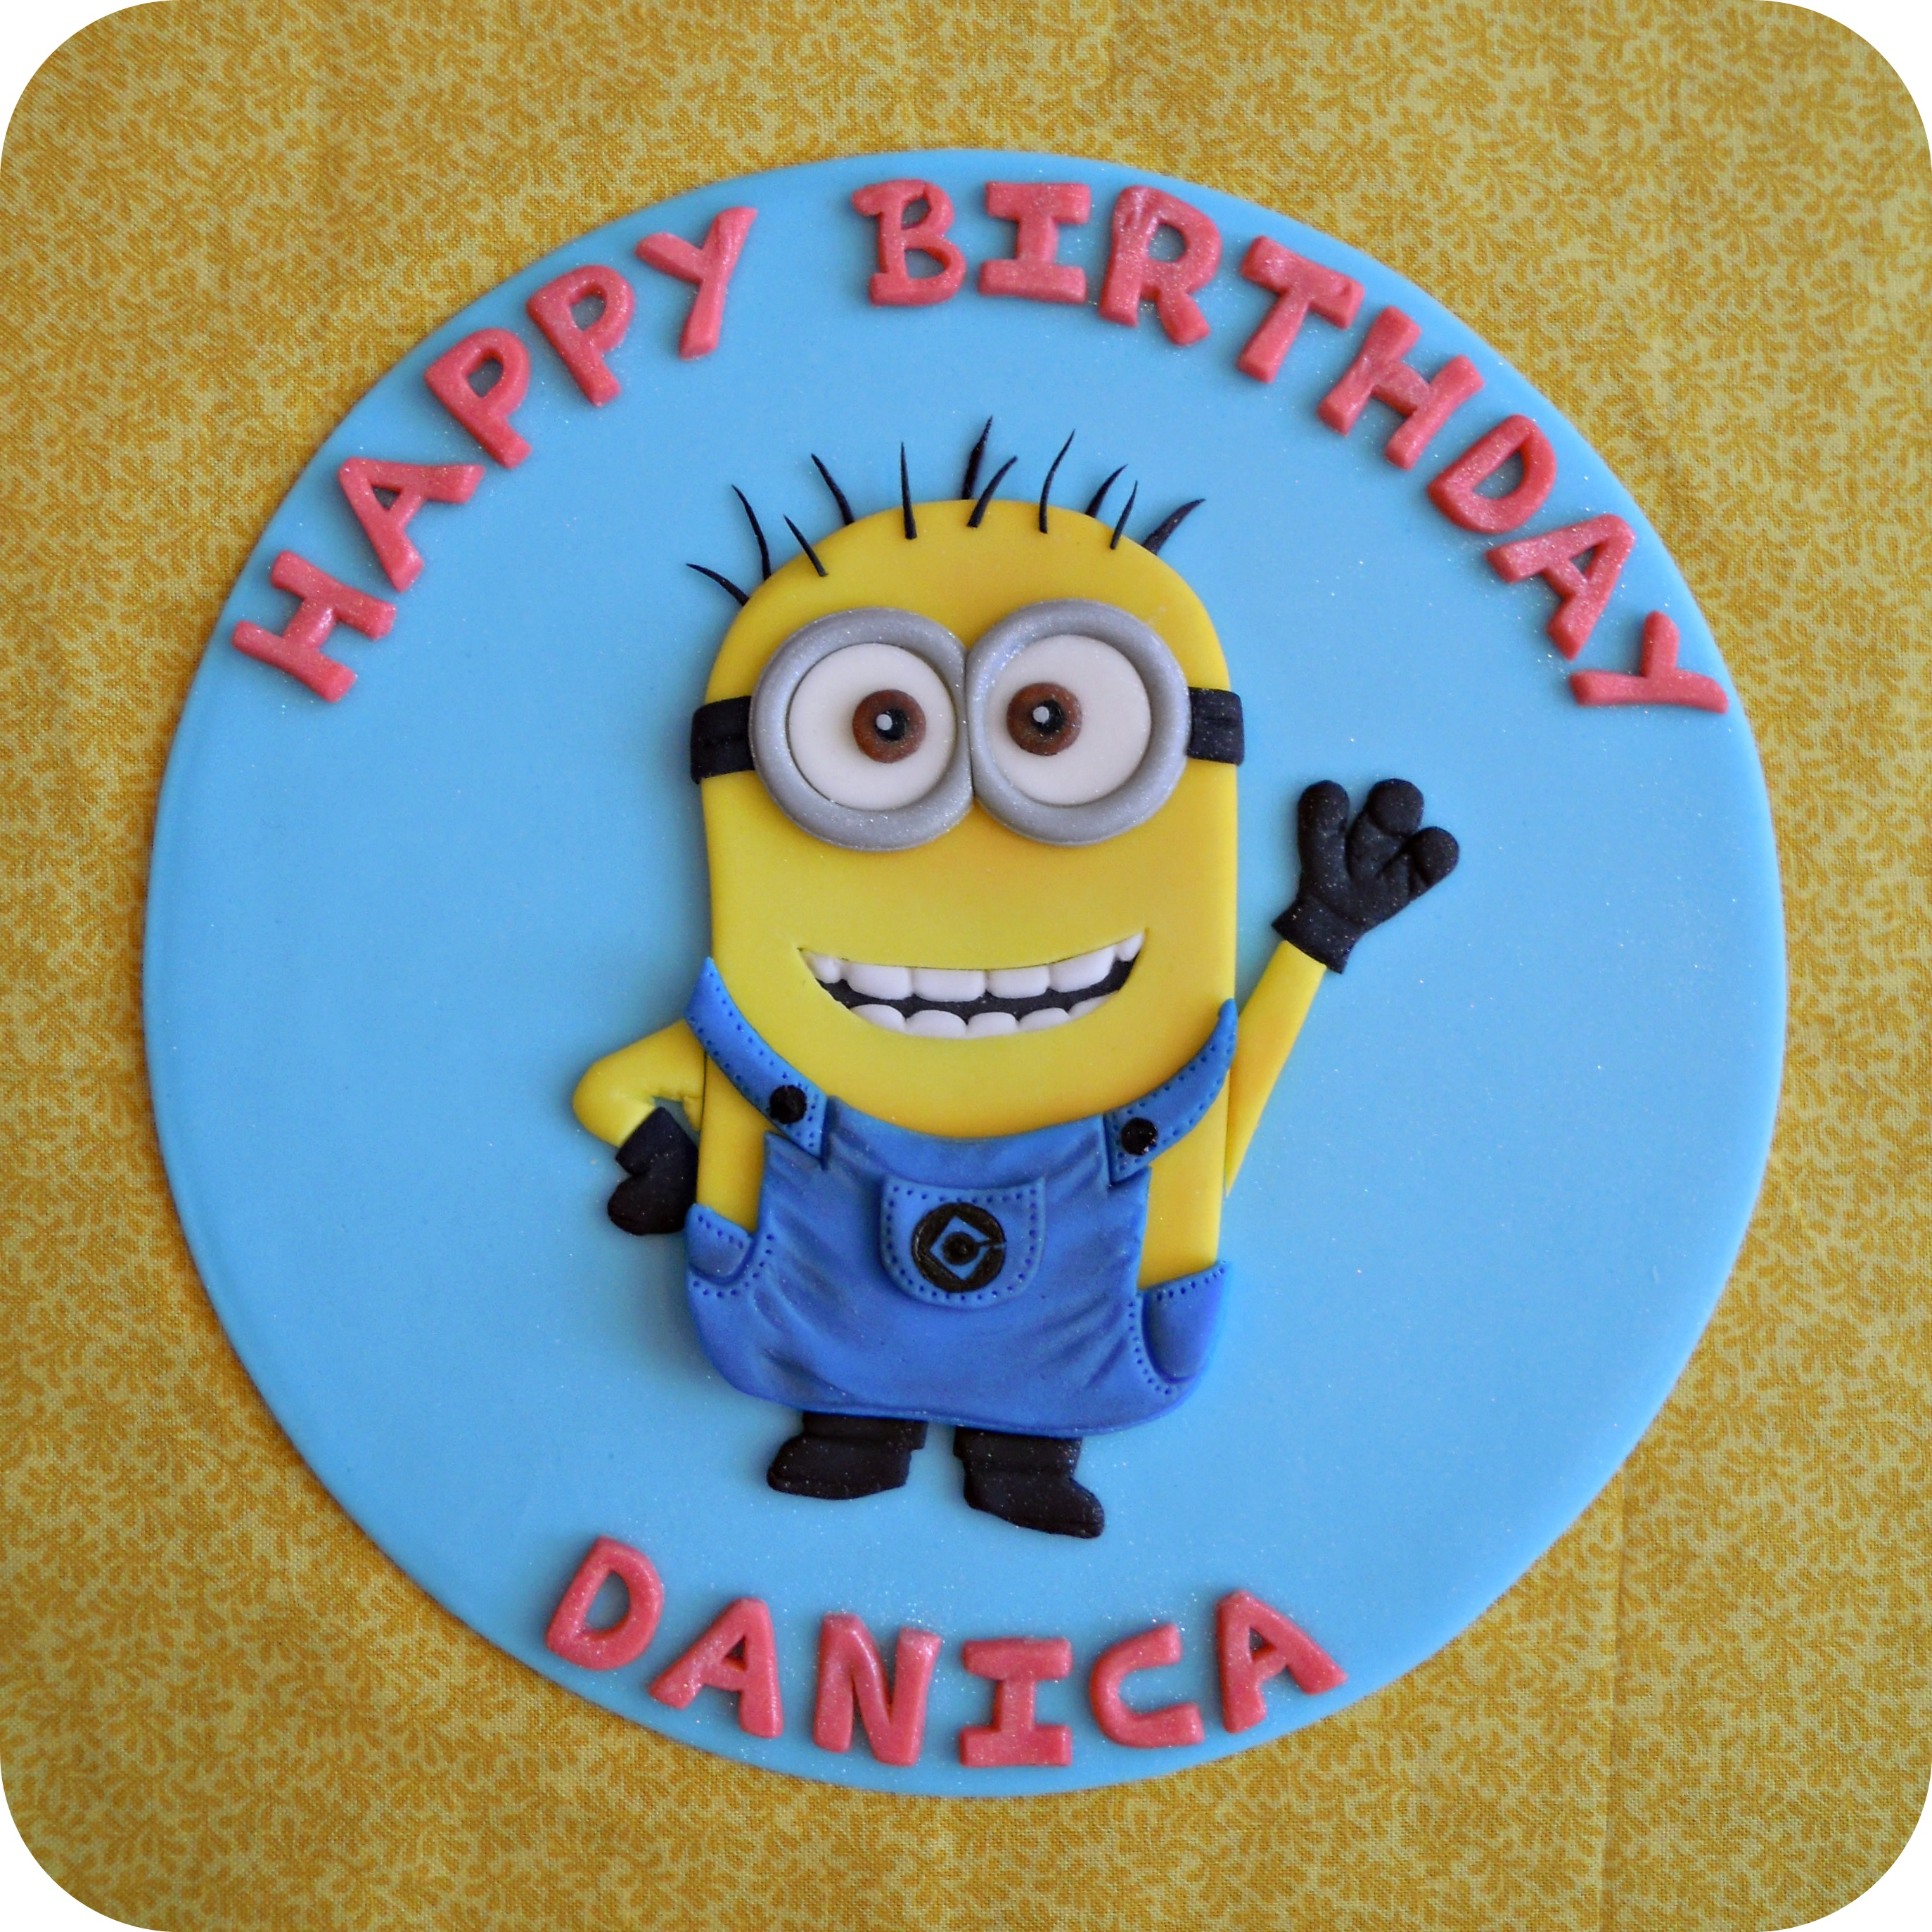 Minions exhibit b fondant cake topper baditri Image collections